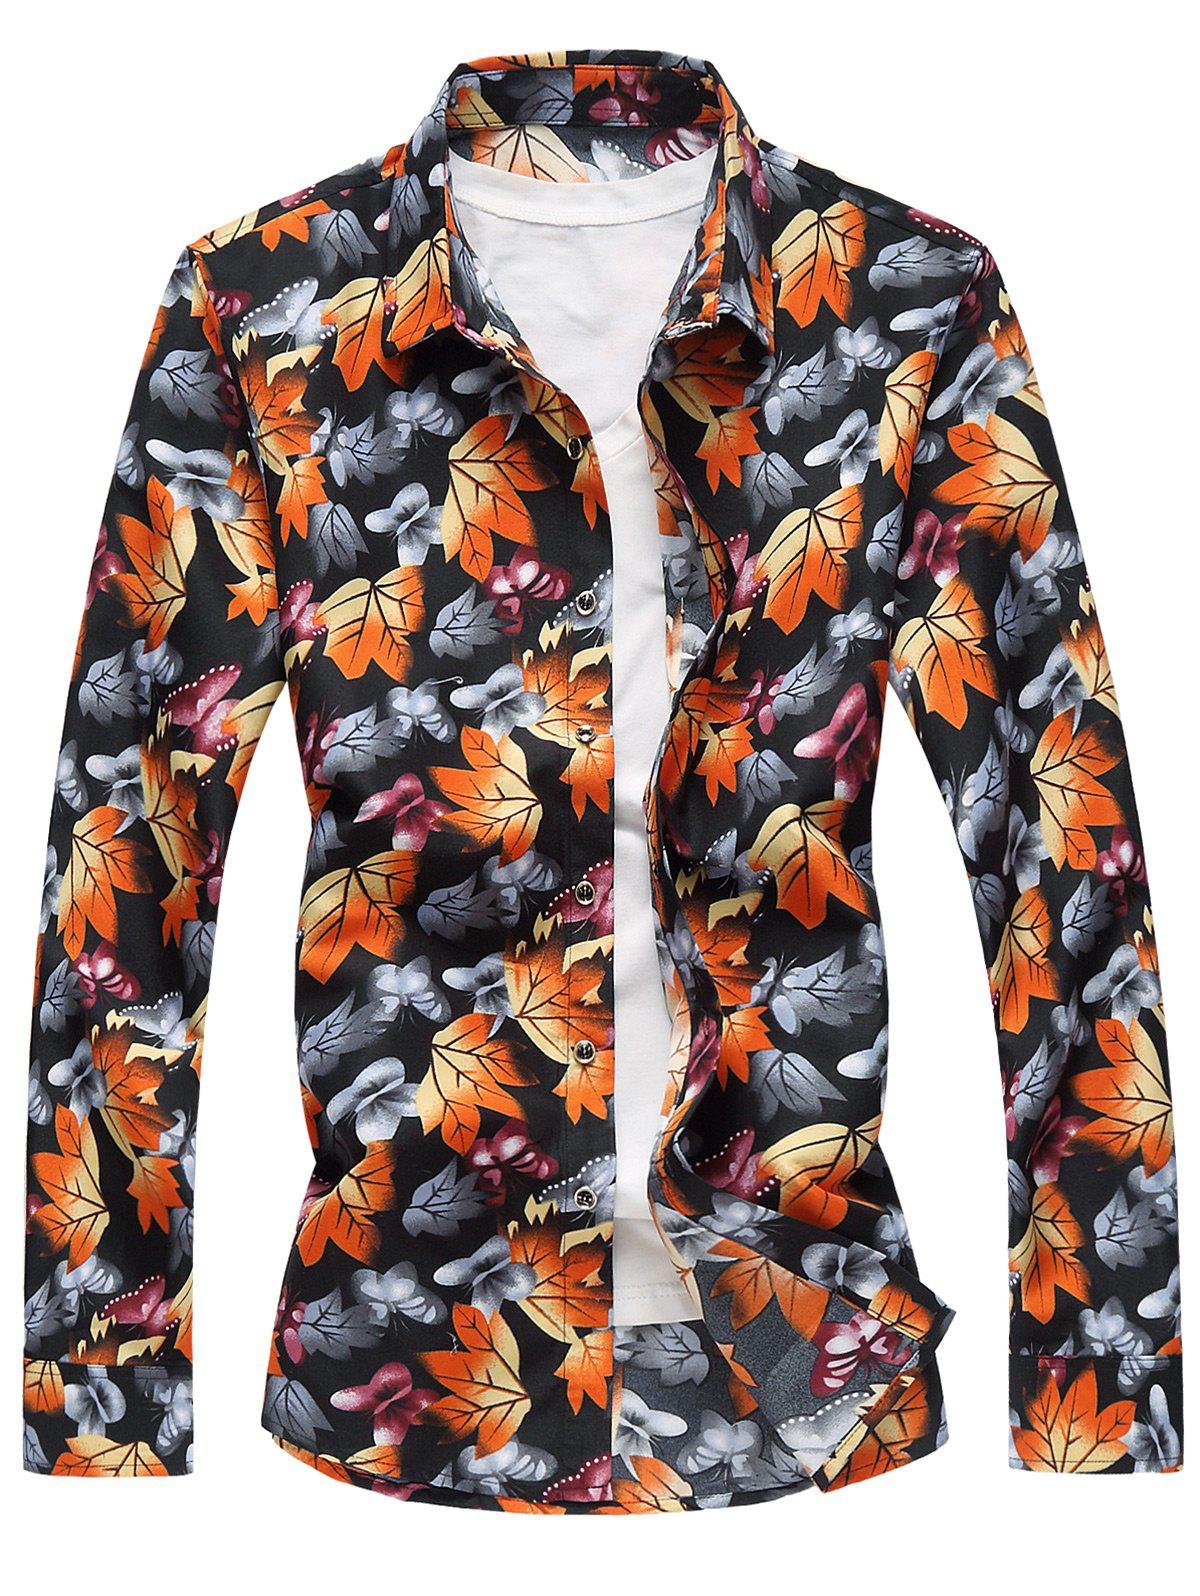 3D Butterflies and Maple Leaves Print Plus Size Shirt - COLORMIX 7XL